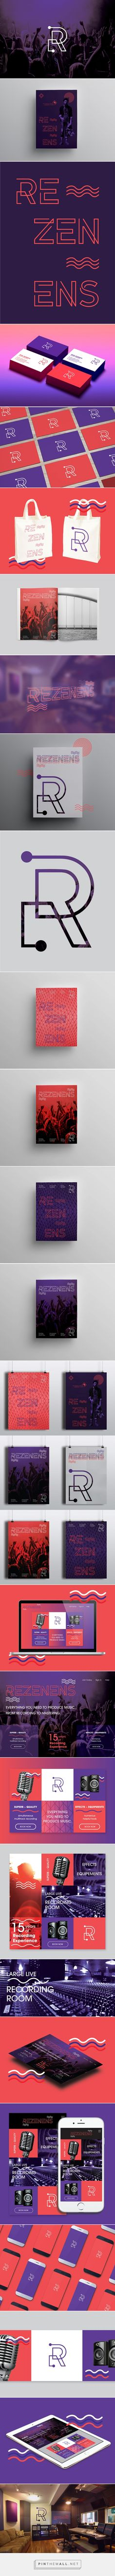 » REZENENS — Branding | Art Direction | Web Design on Behance - created via http://pinthemall.net